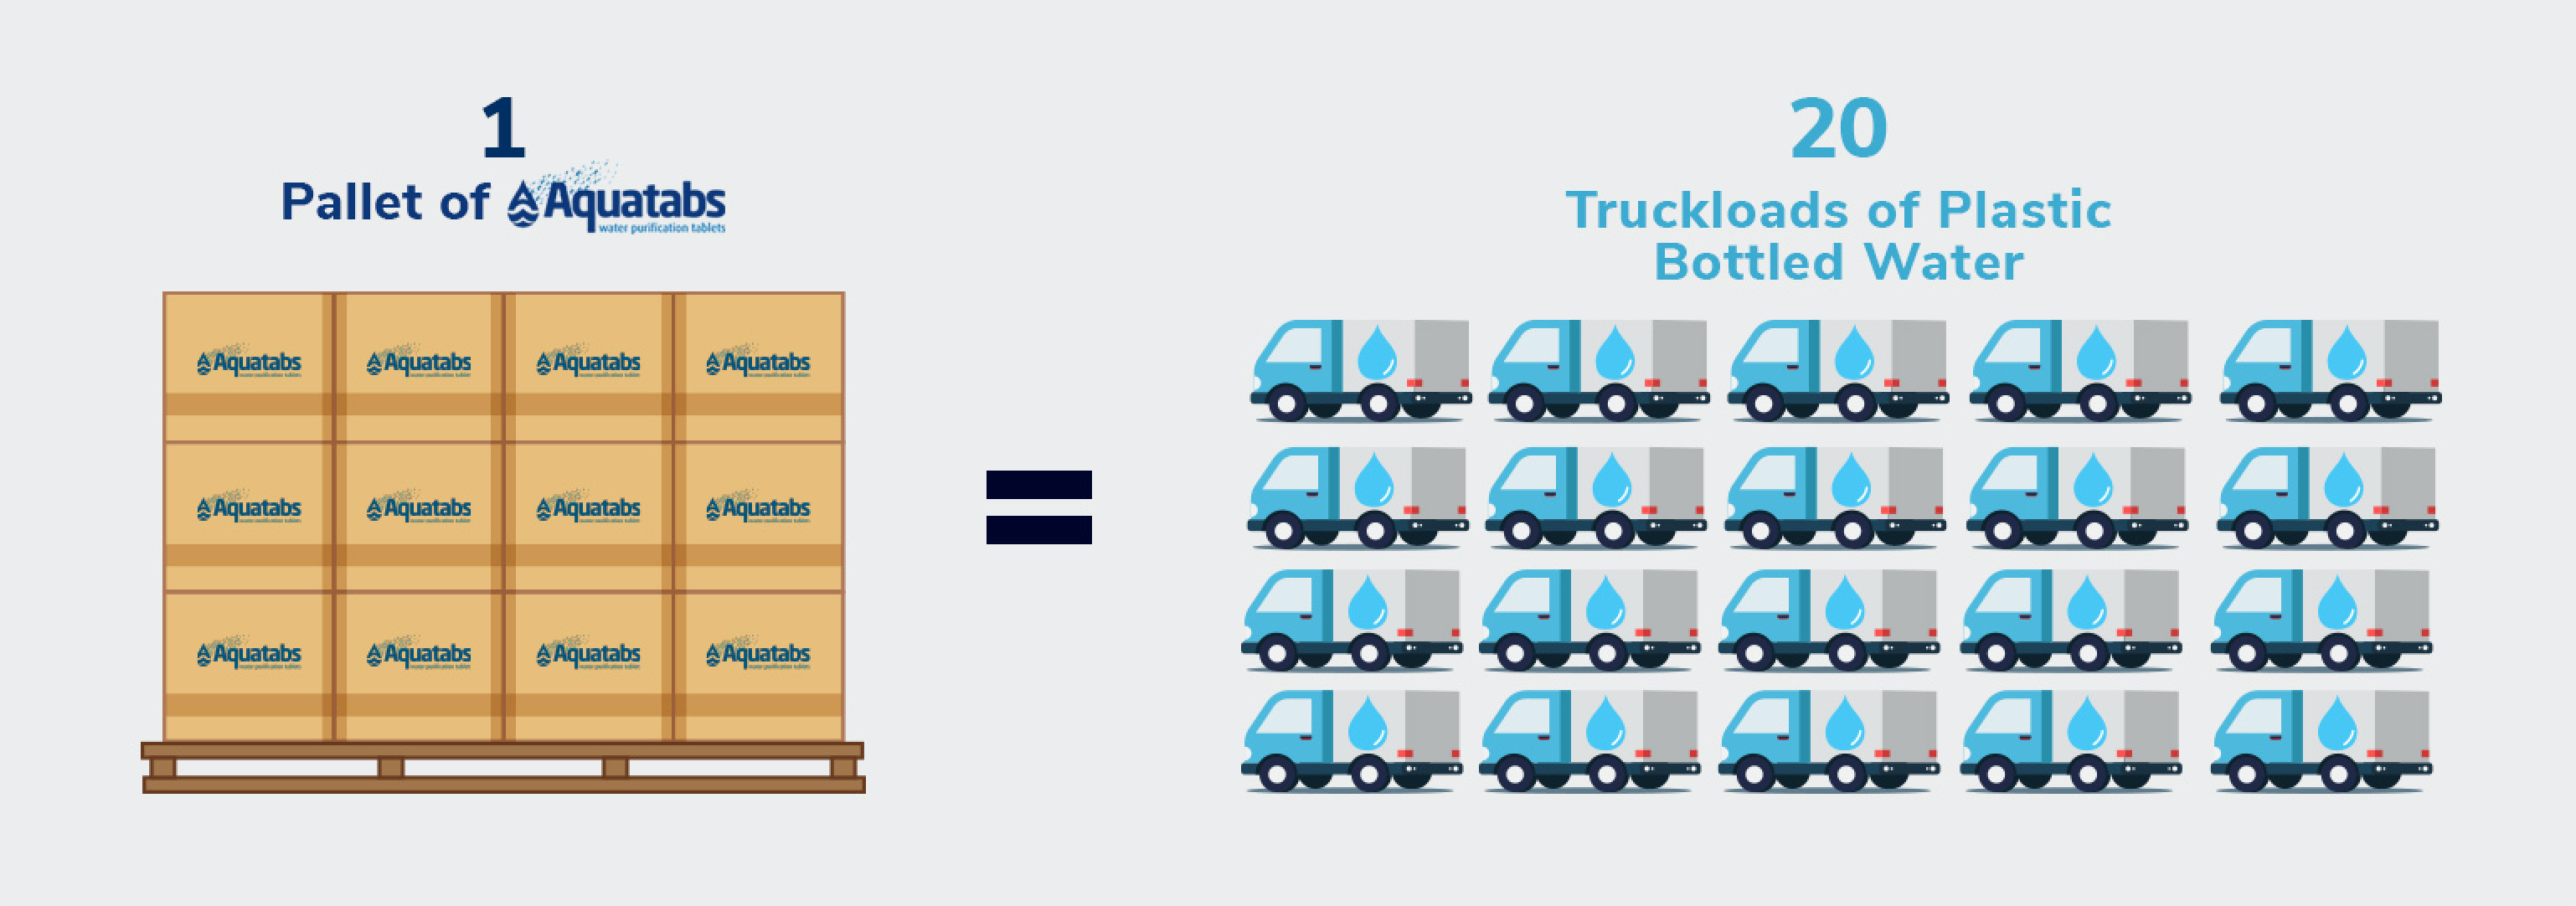 Eliminate plastic, save time and energy. Infographic comparison: 1 pallet of AQUATABS equals 20 truckloads of plastic bottled water